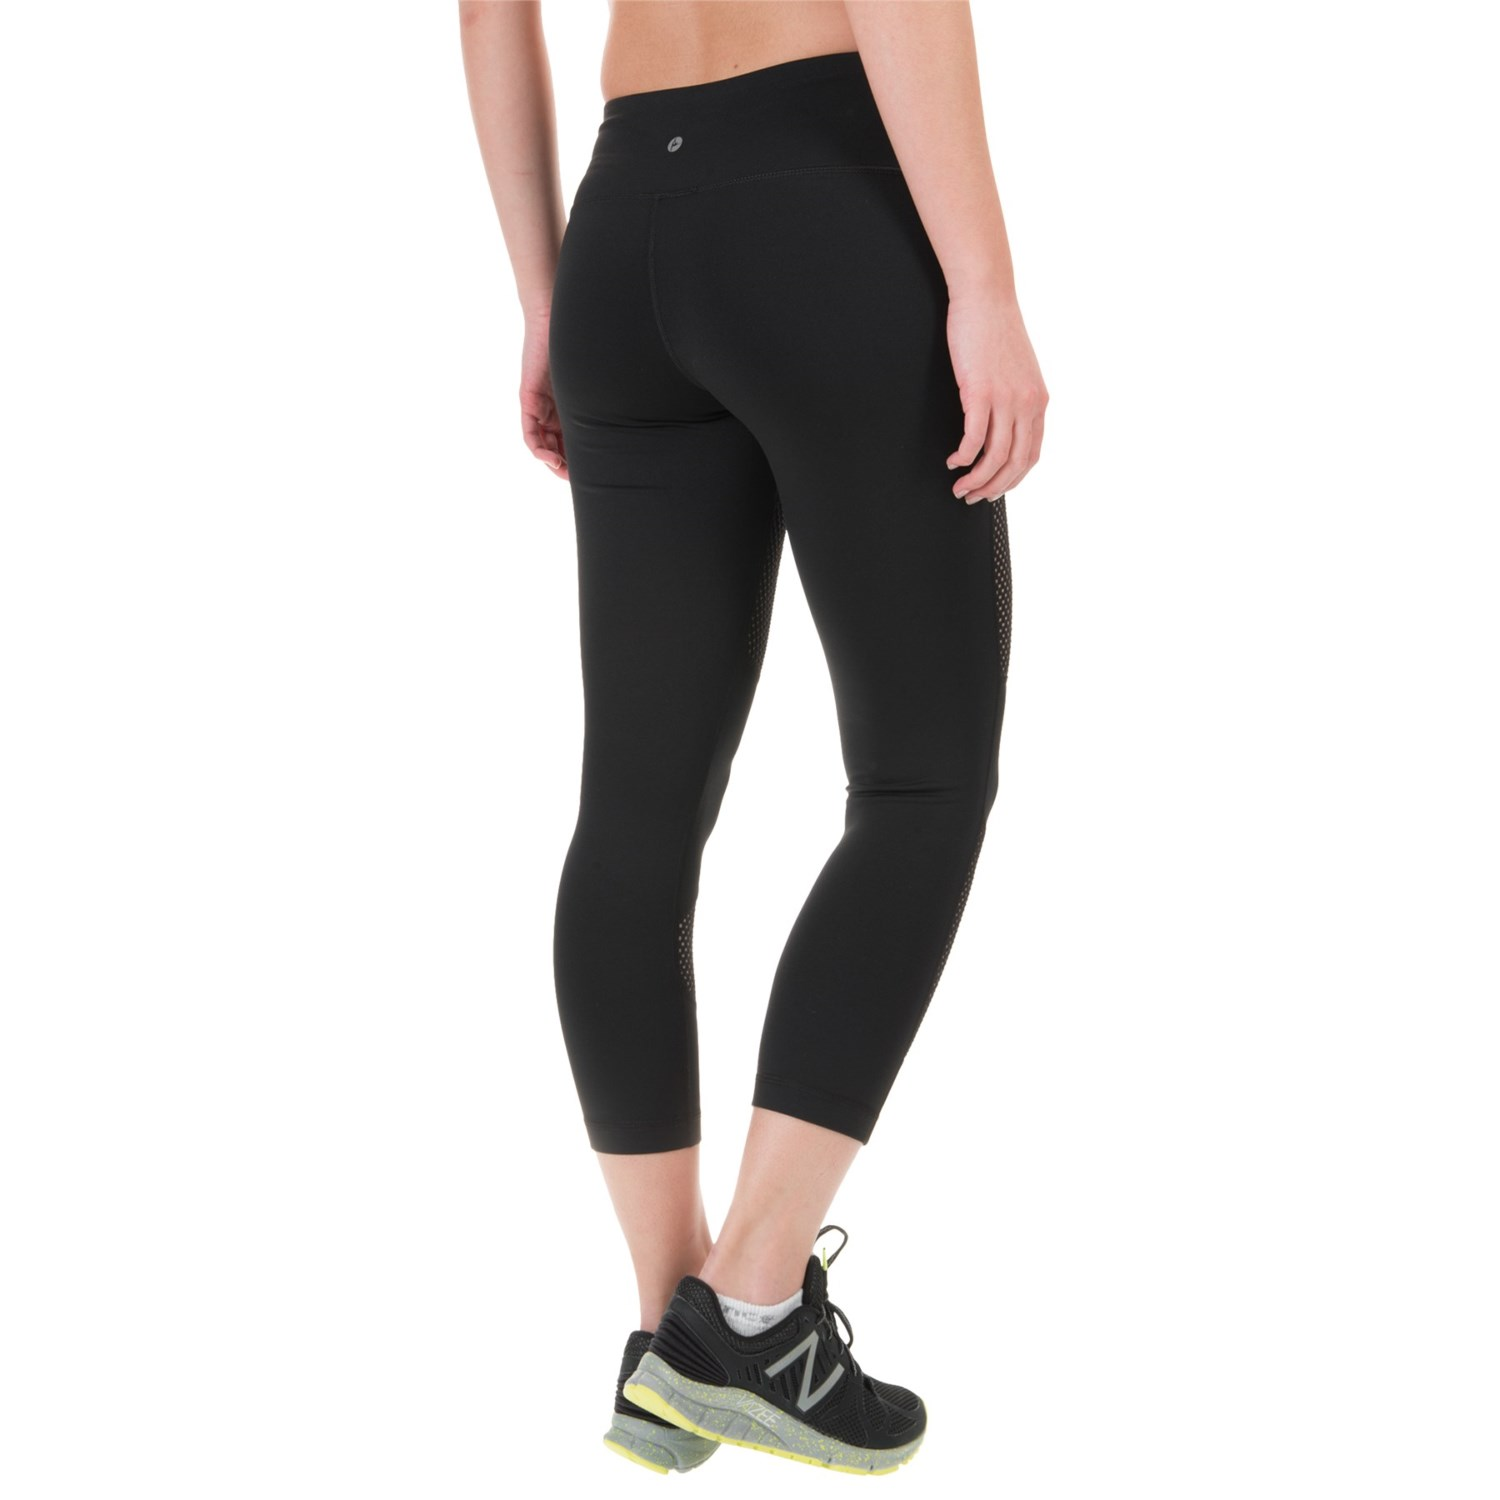 179dn 2 90 degree by reflex high waist mesh block capris for women